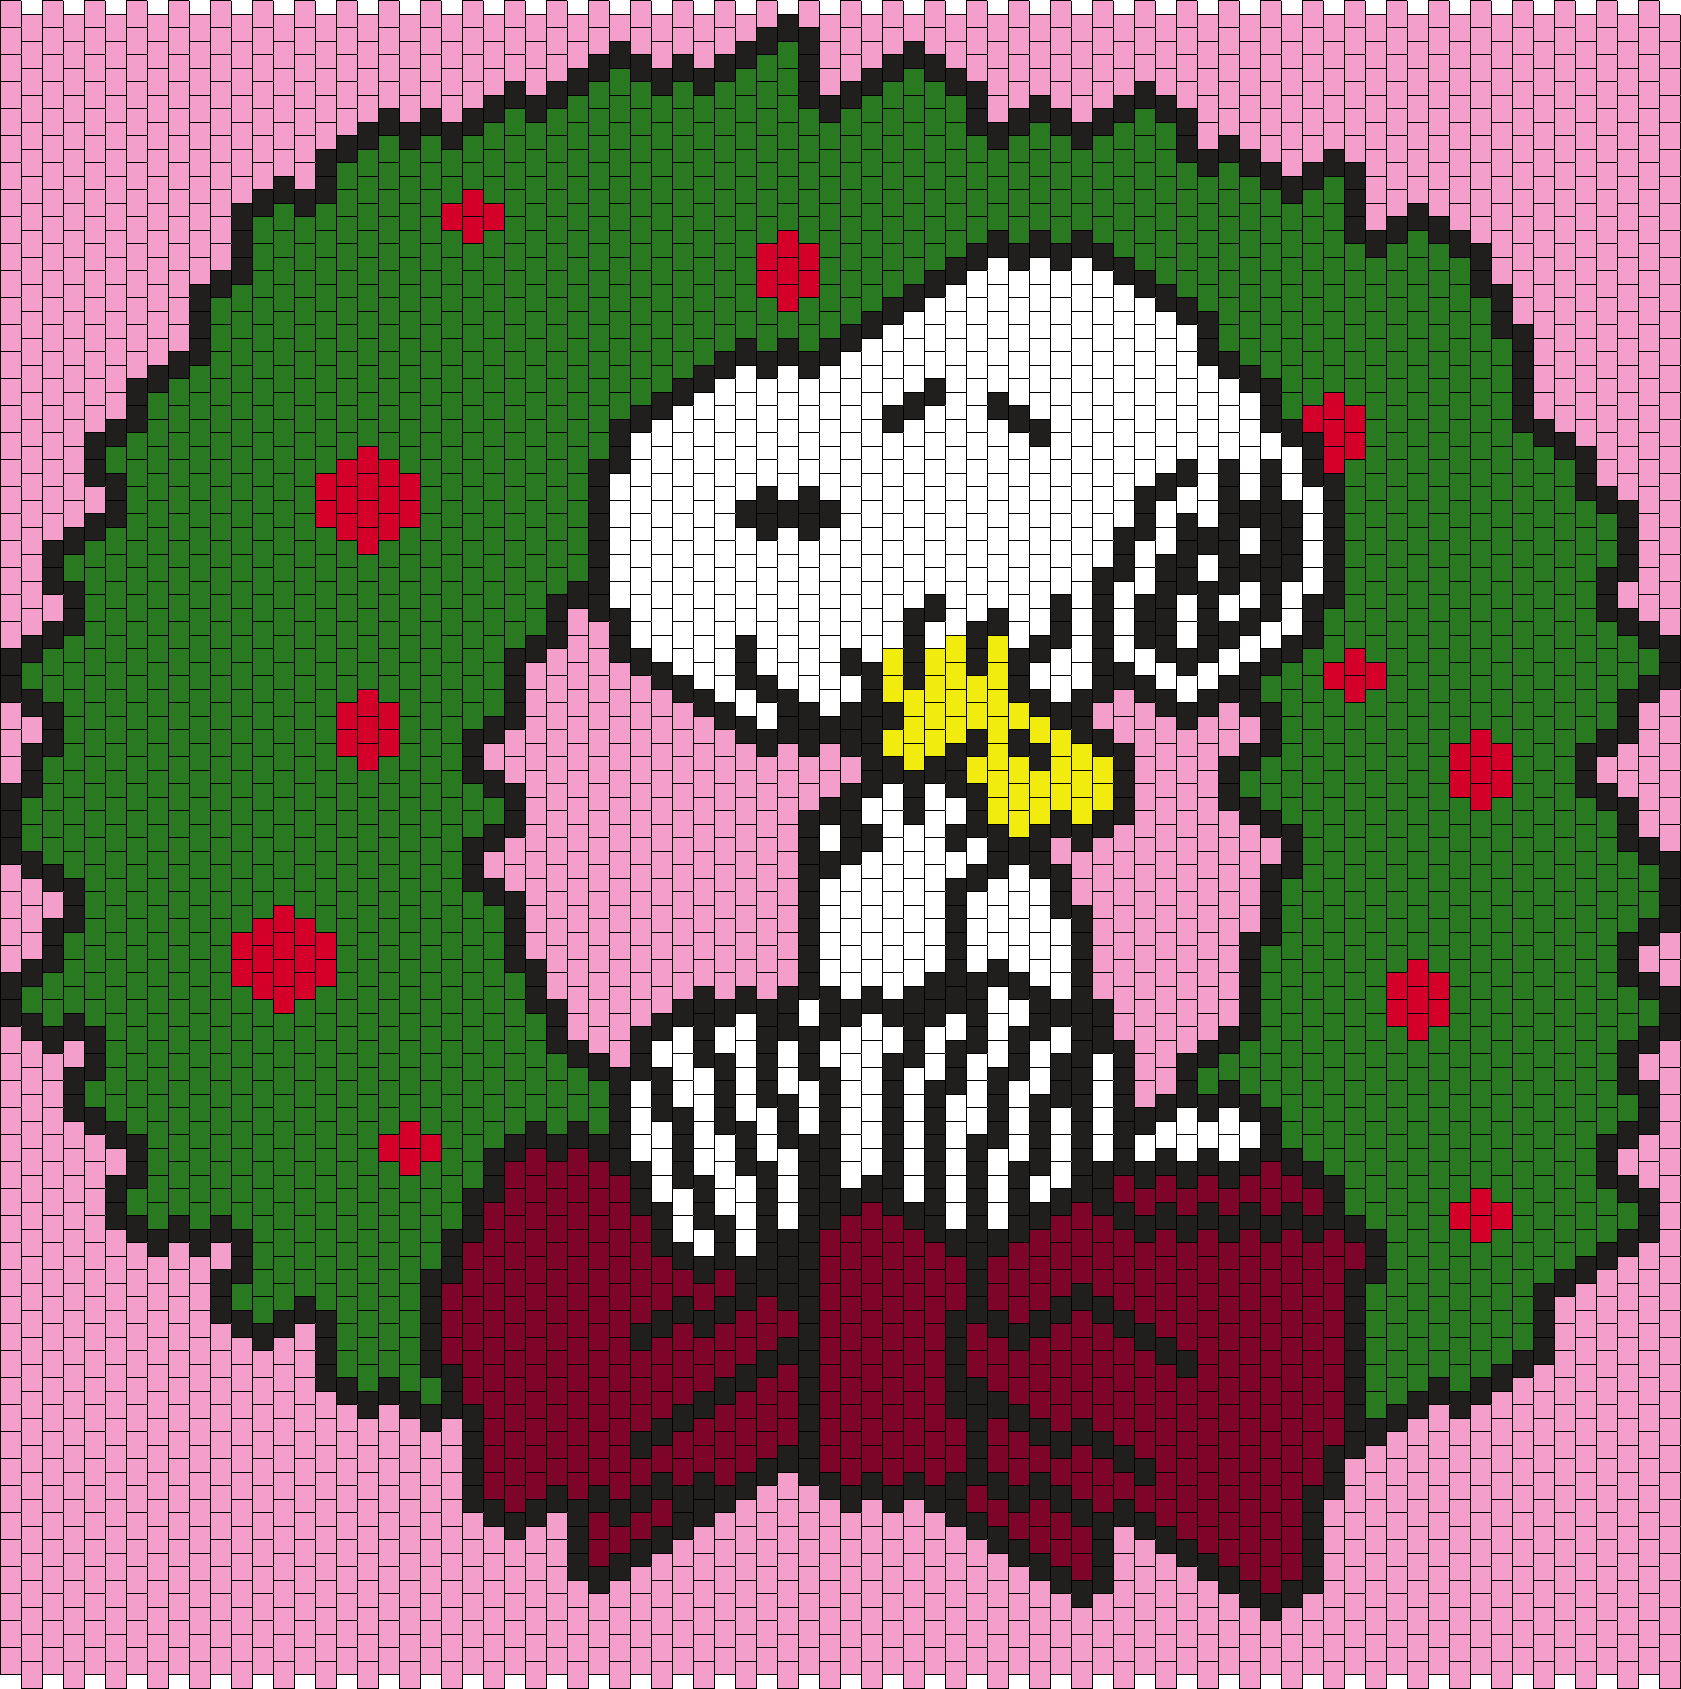 Snoopy Hugging Woodstock In A Christmas Wreath